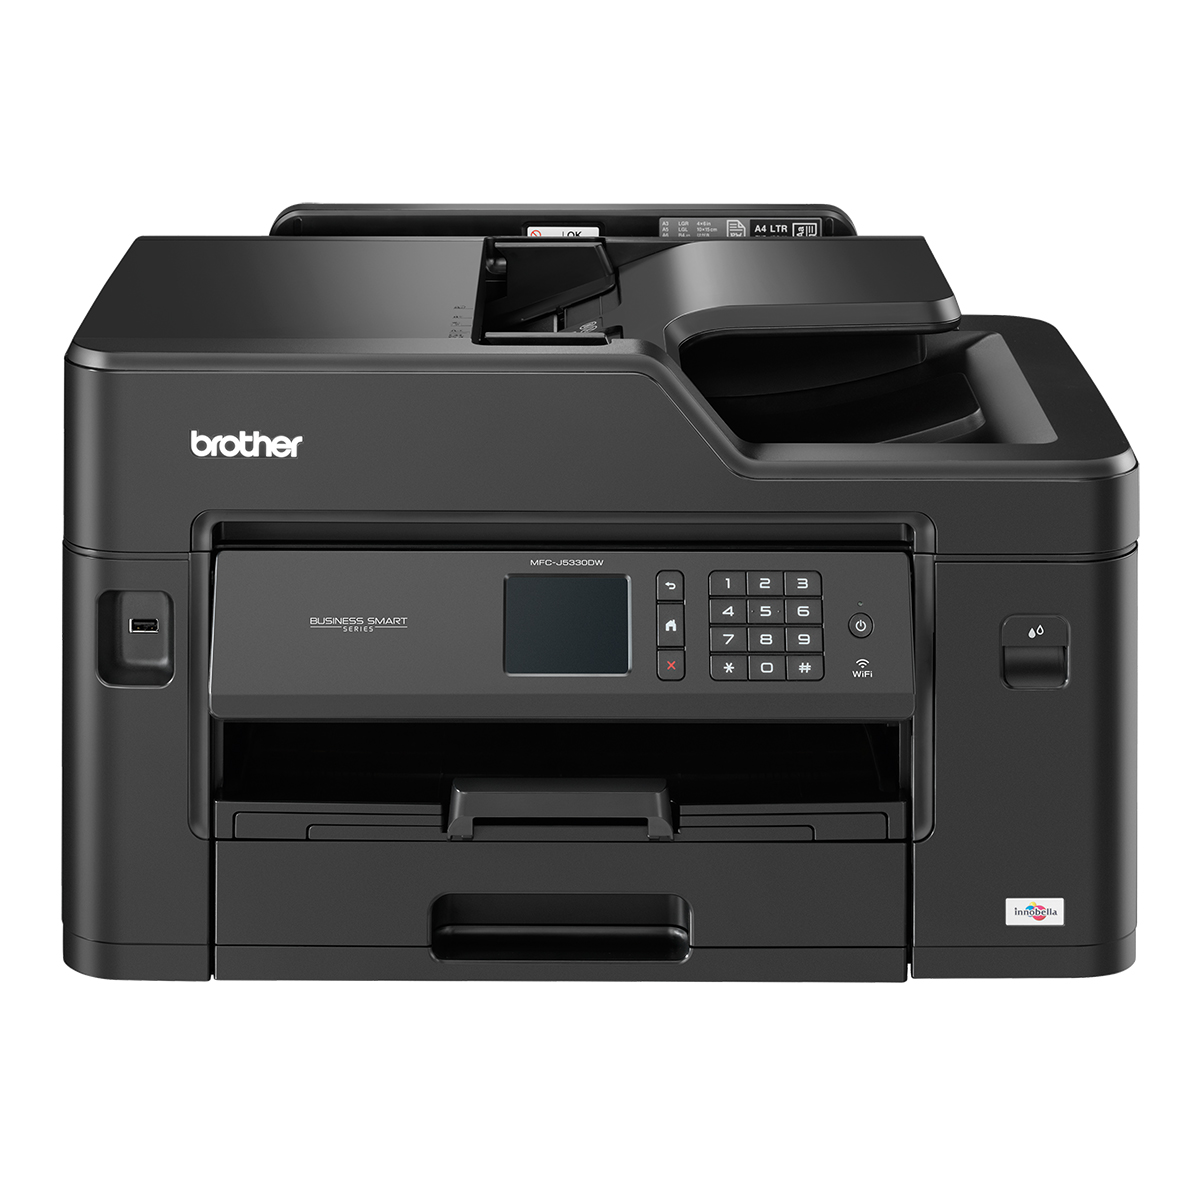 Brother MFC-J5330DW A Grade - Refurbished Machine